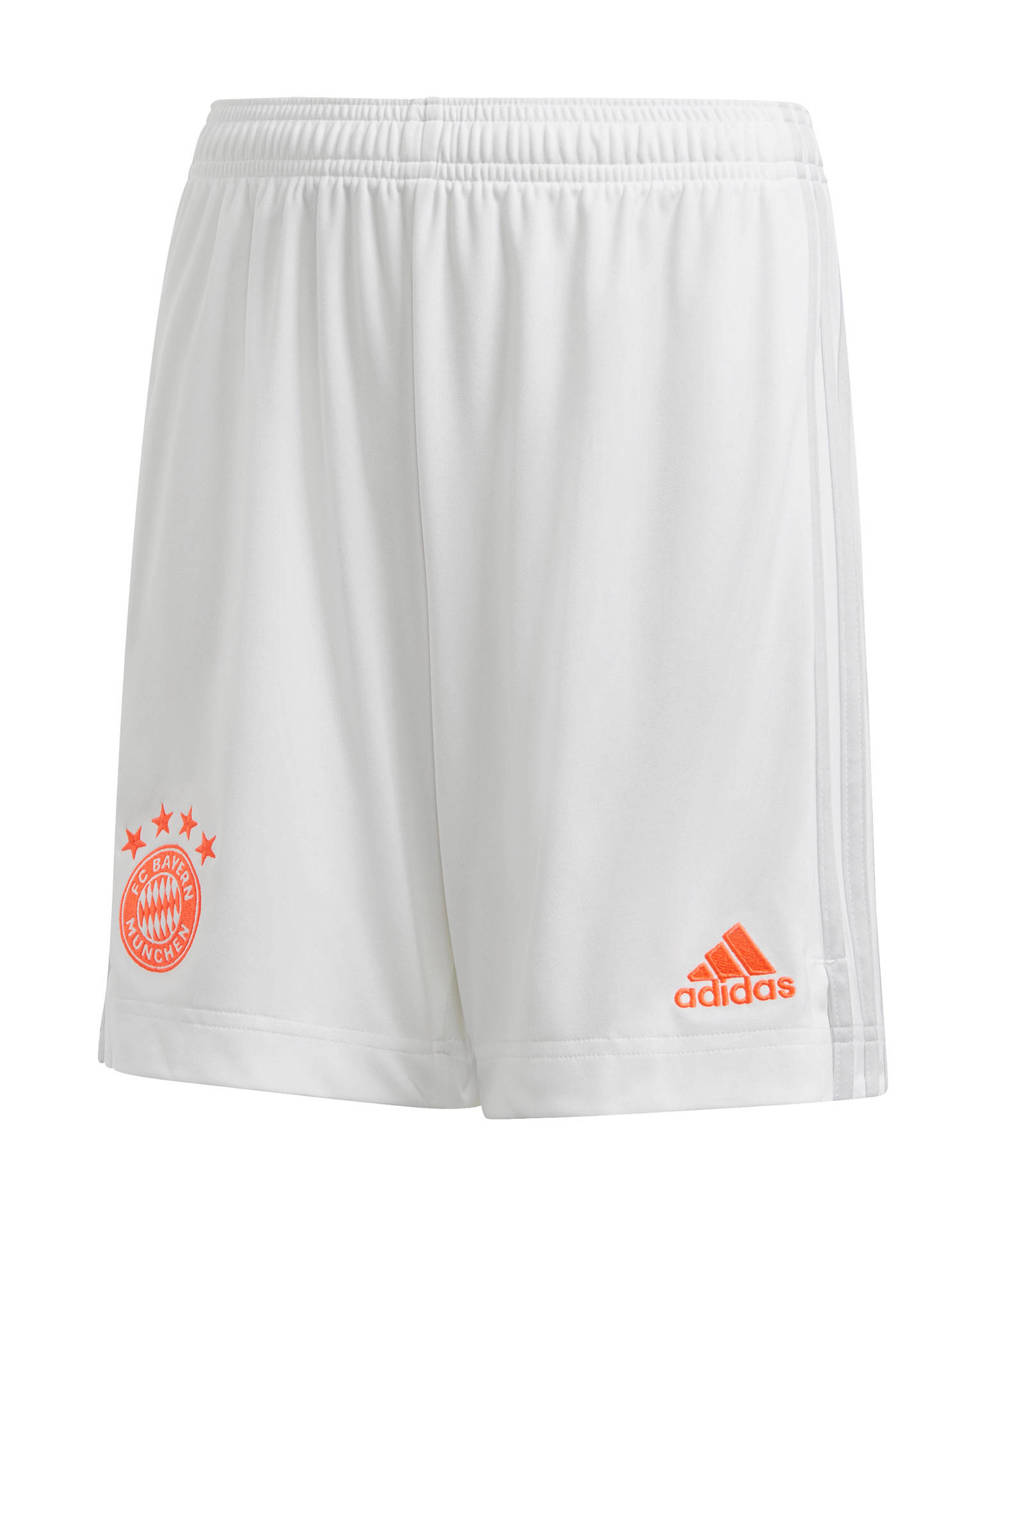 adidas Performance Junior FC Bayern München uit short wit, Wit